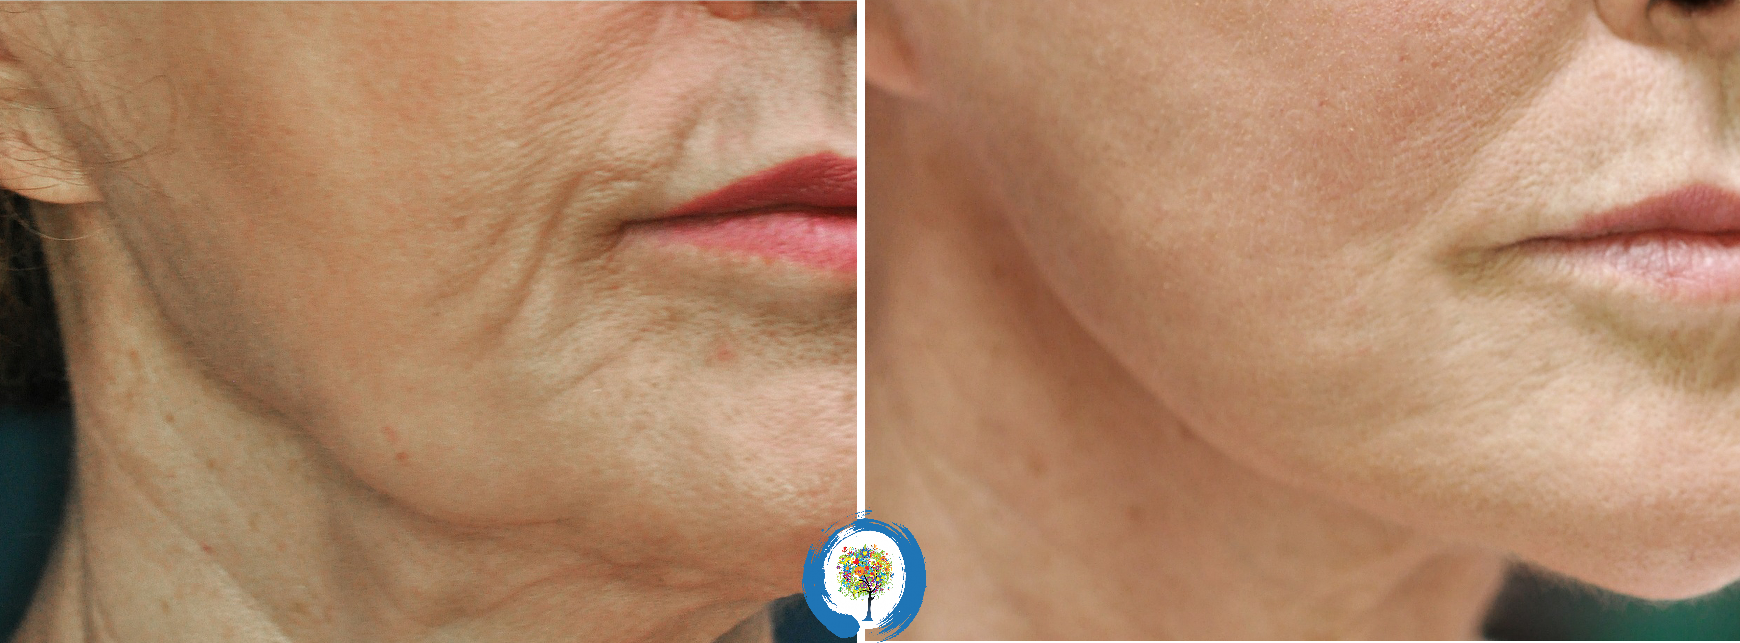 Profound RF Microneedling at Restore Beauty in Loveland/Fort Collins for loose, sagging skin on the face and neck